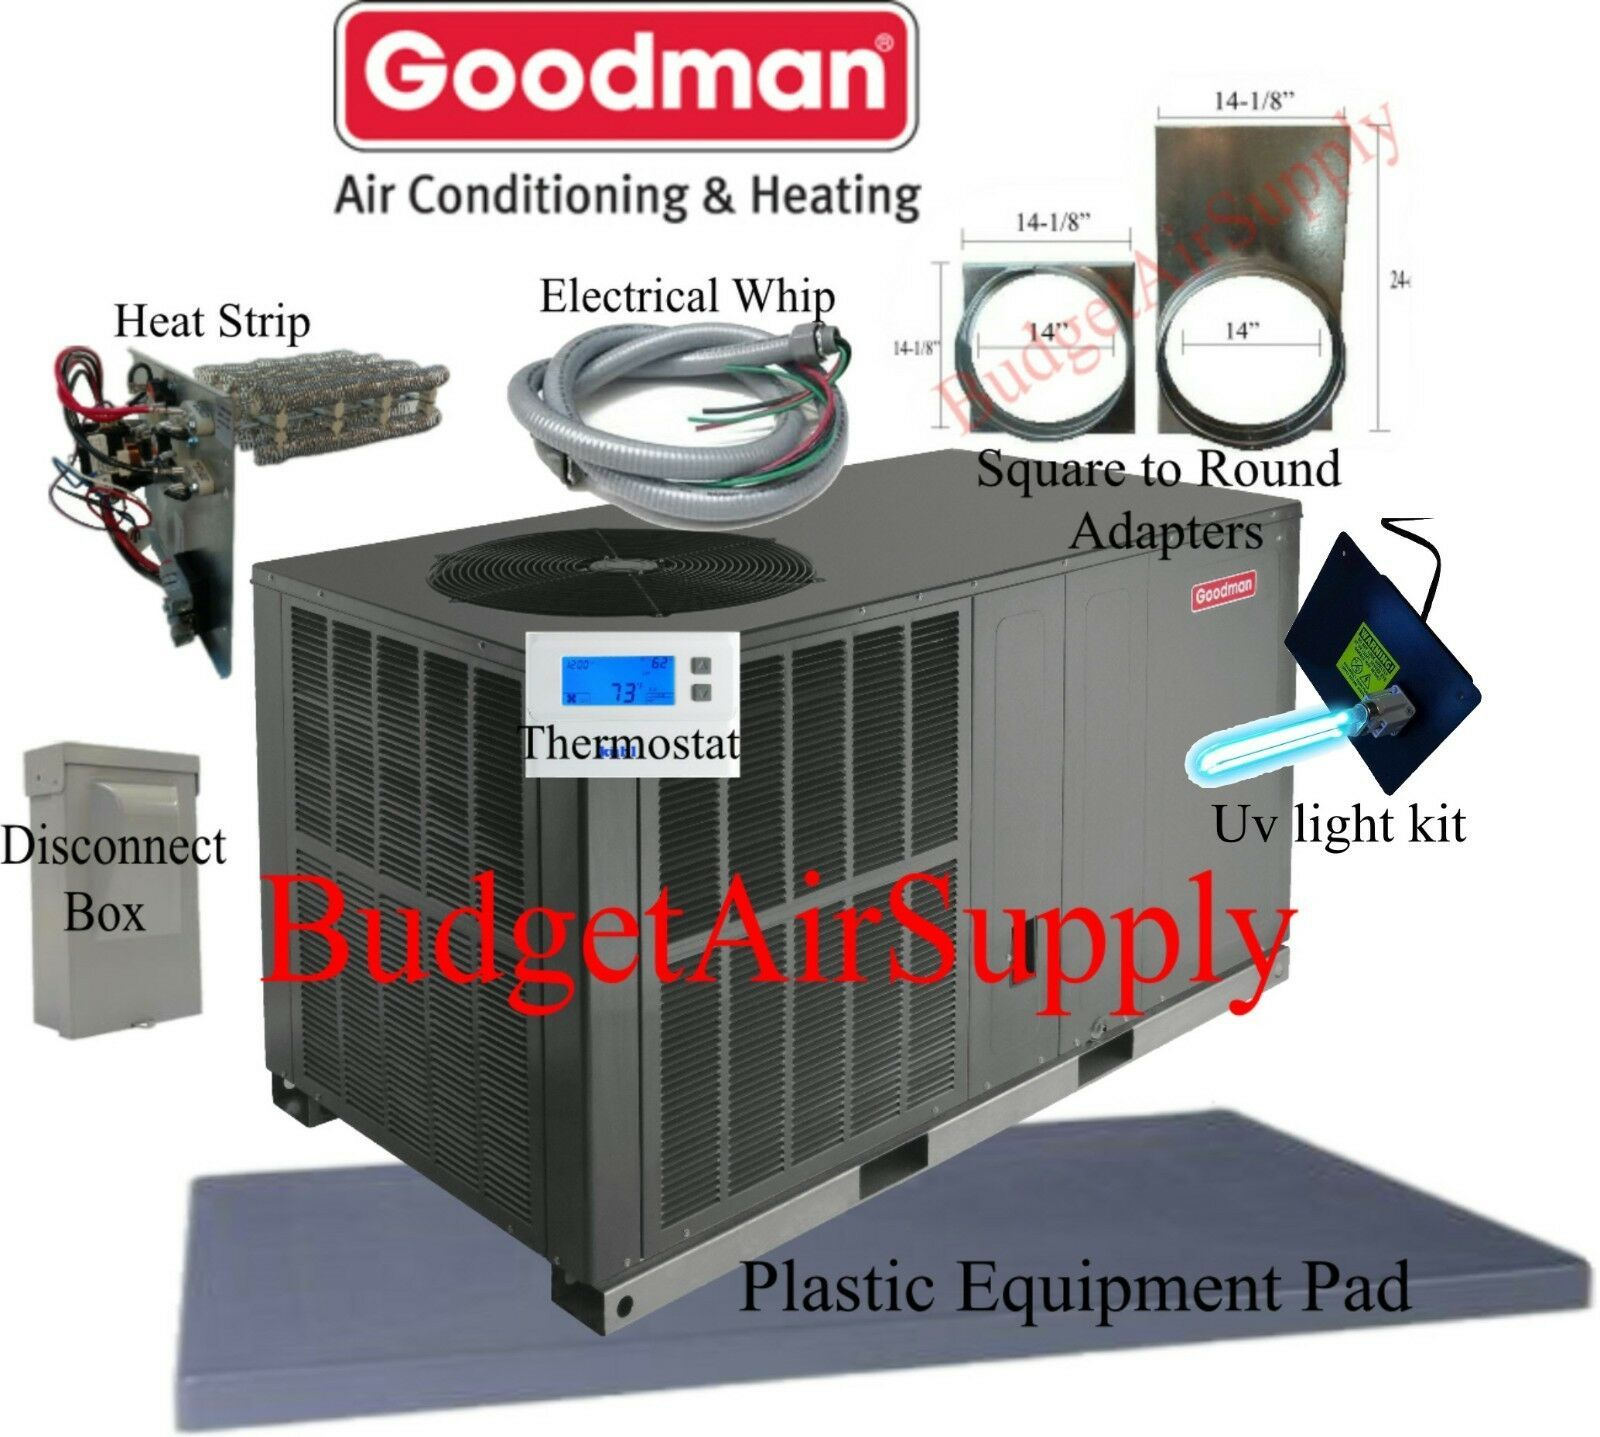 3 Ton Heat Pump The Unit Heat Pump Packaging